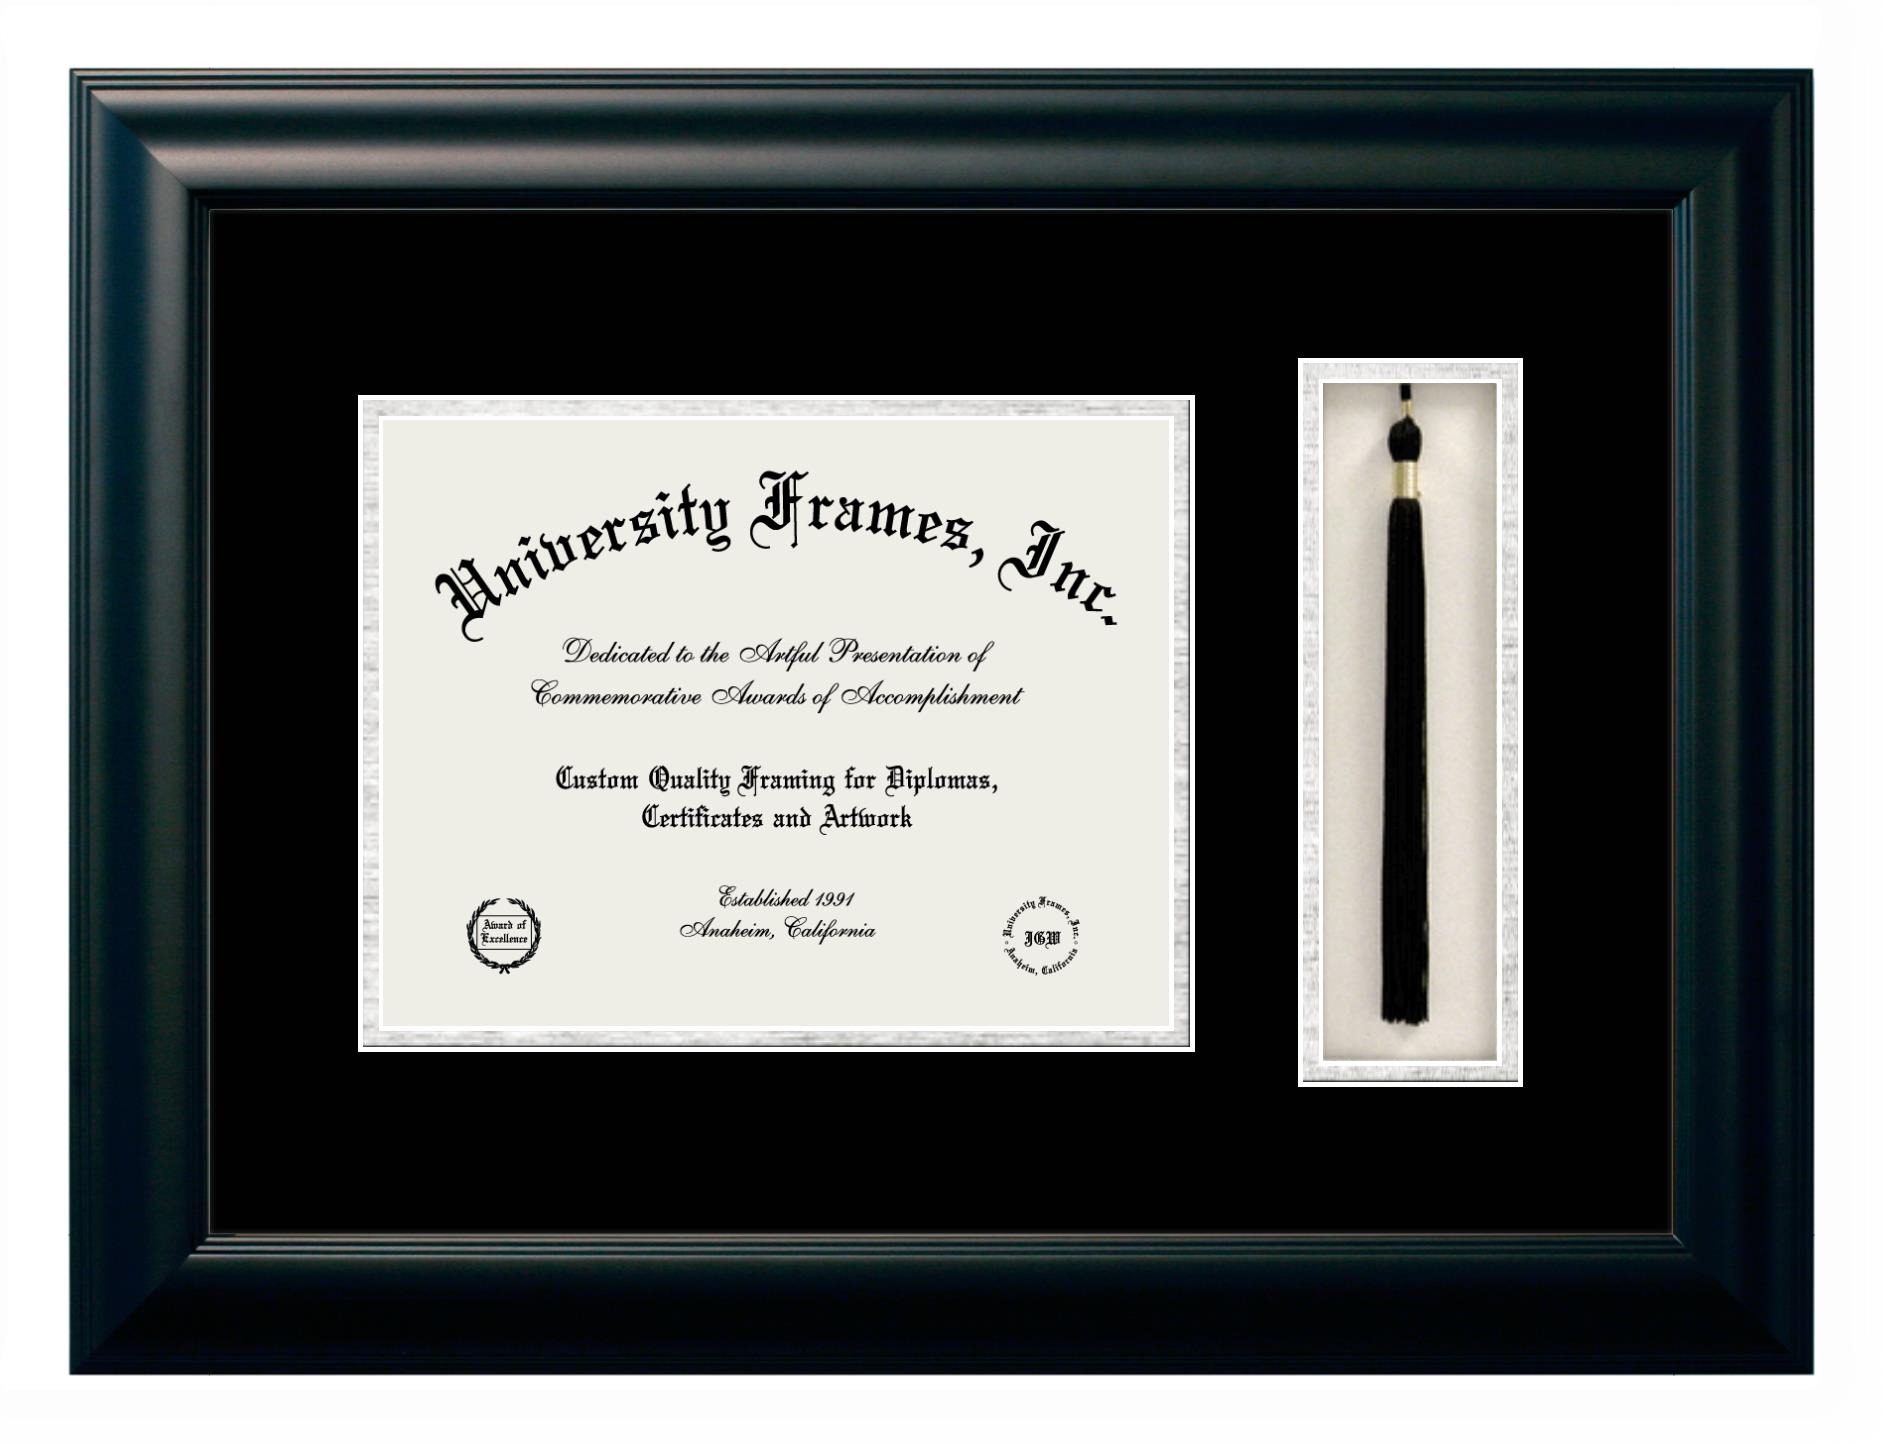 Diploma with Tassel Box Frame in Satin Mahogany with Black & Silver Mats